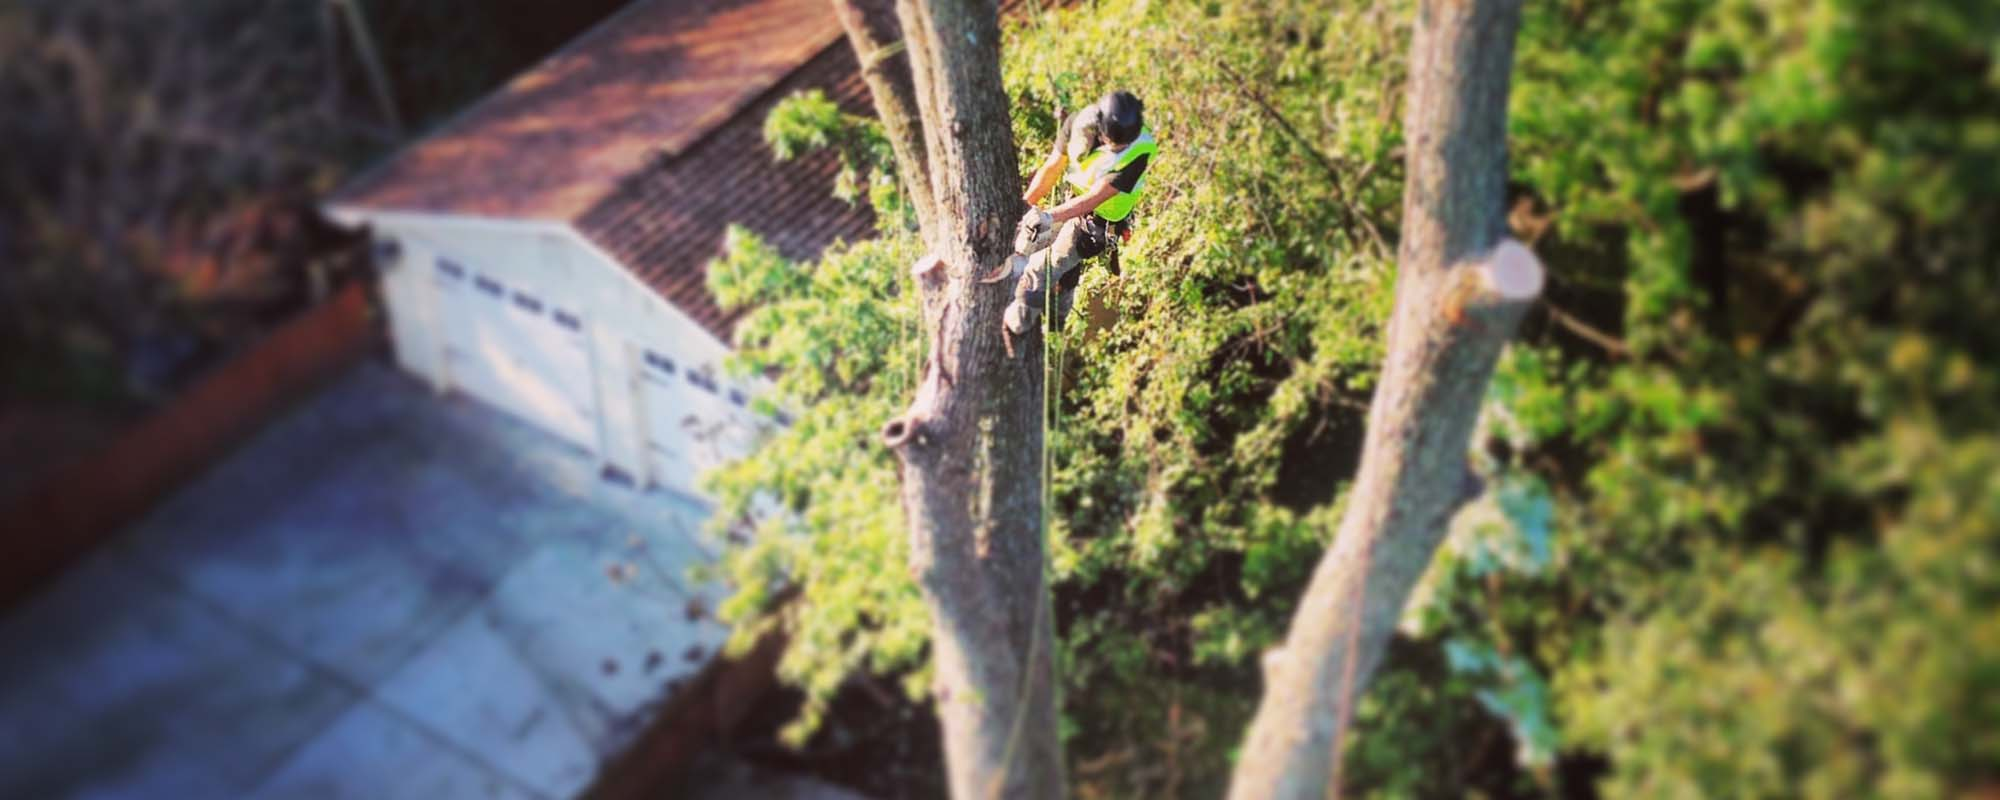 NJ tree removal service worker cutting a tree down while hanging from ropes